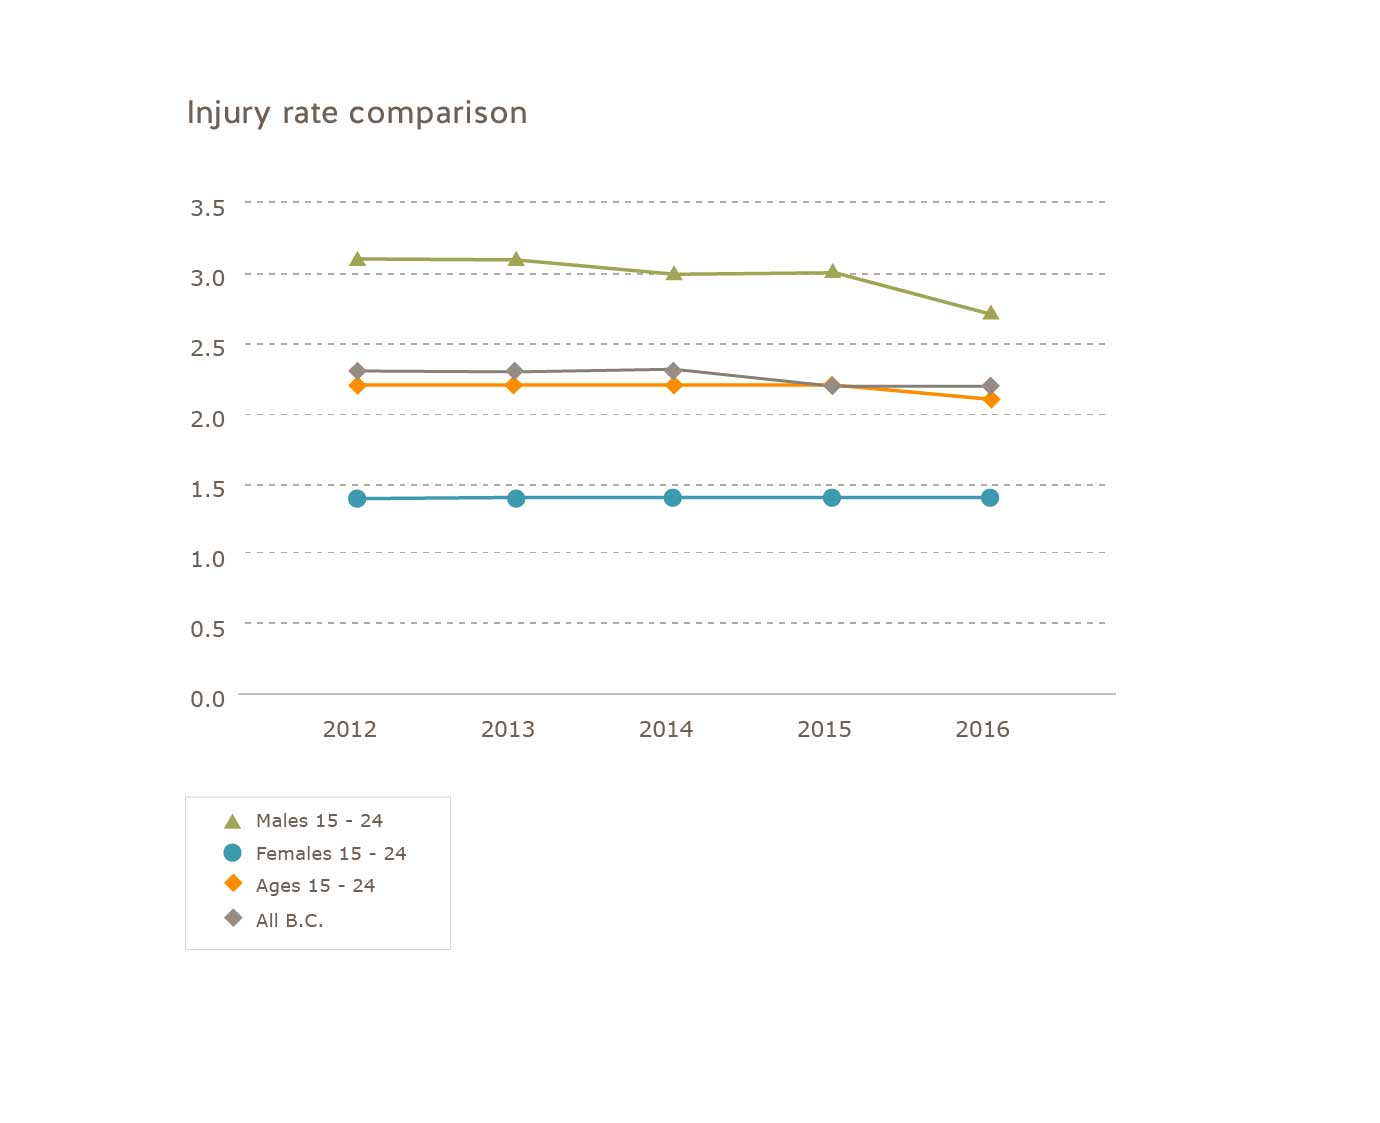 Young worker injury rate comparison for 2012 to 2016. Females 15 to 24: 2012=1.4; 2014=1.4; 2015=1.4; 2016=1.4. Males 15 to 24: 2012=3.1; 2013=3.1; 2014=3.0; 2015=3.0; 2016=2.7. Ages 15 to 24: 2012=2.2; 2013=2.2; 2014=2.2; 2015=2.2; 2016=2.1. All B.C.: 2012=2.3; 2013=2.3; 2014=2.3; 2015=2.2; 2016=2.2